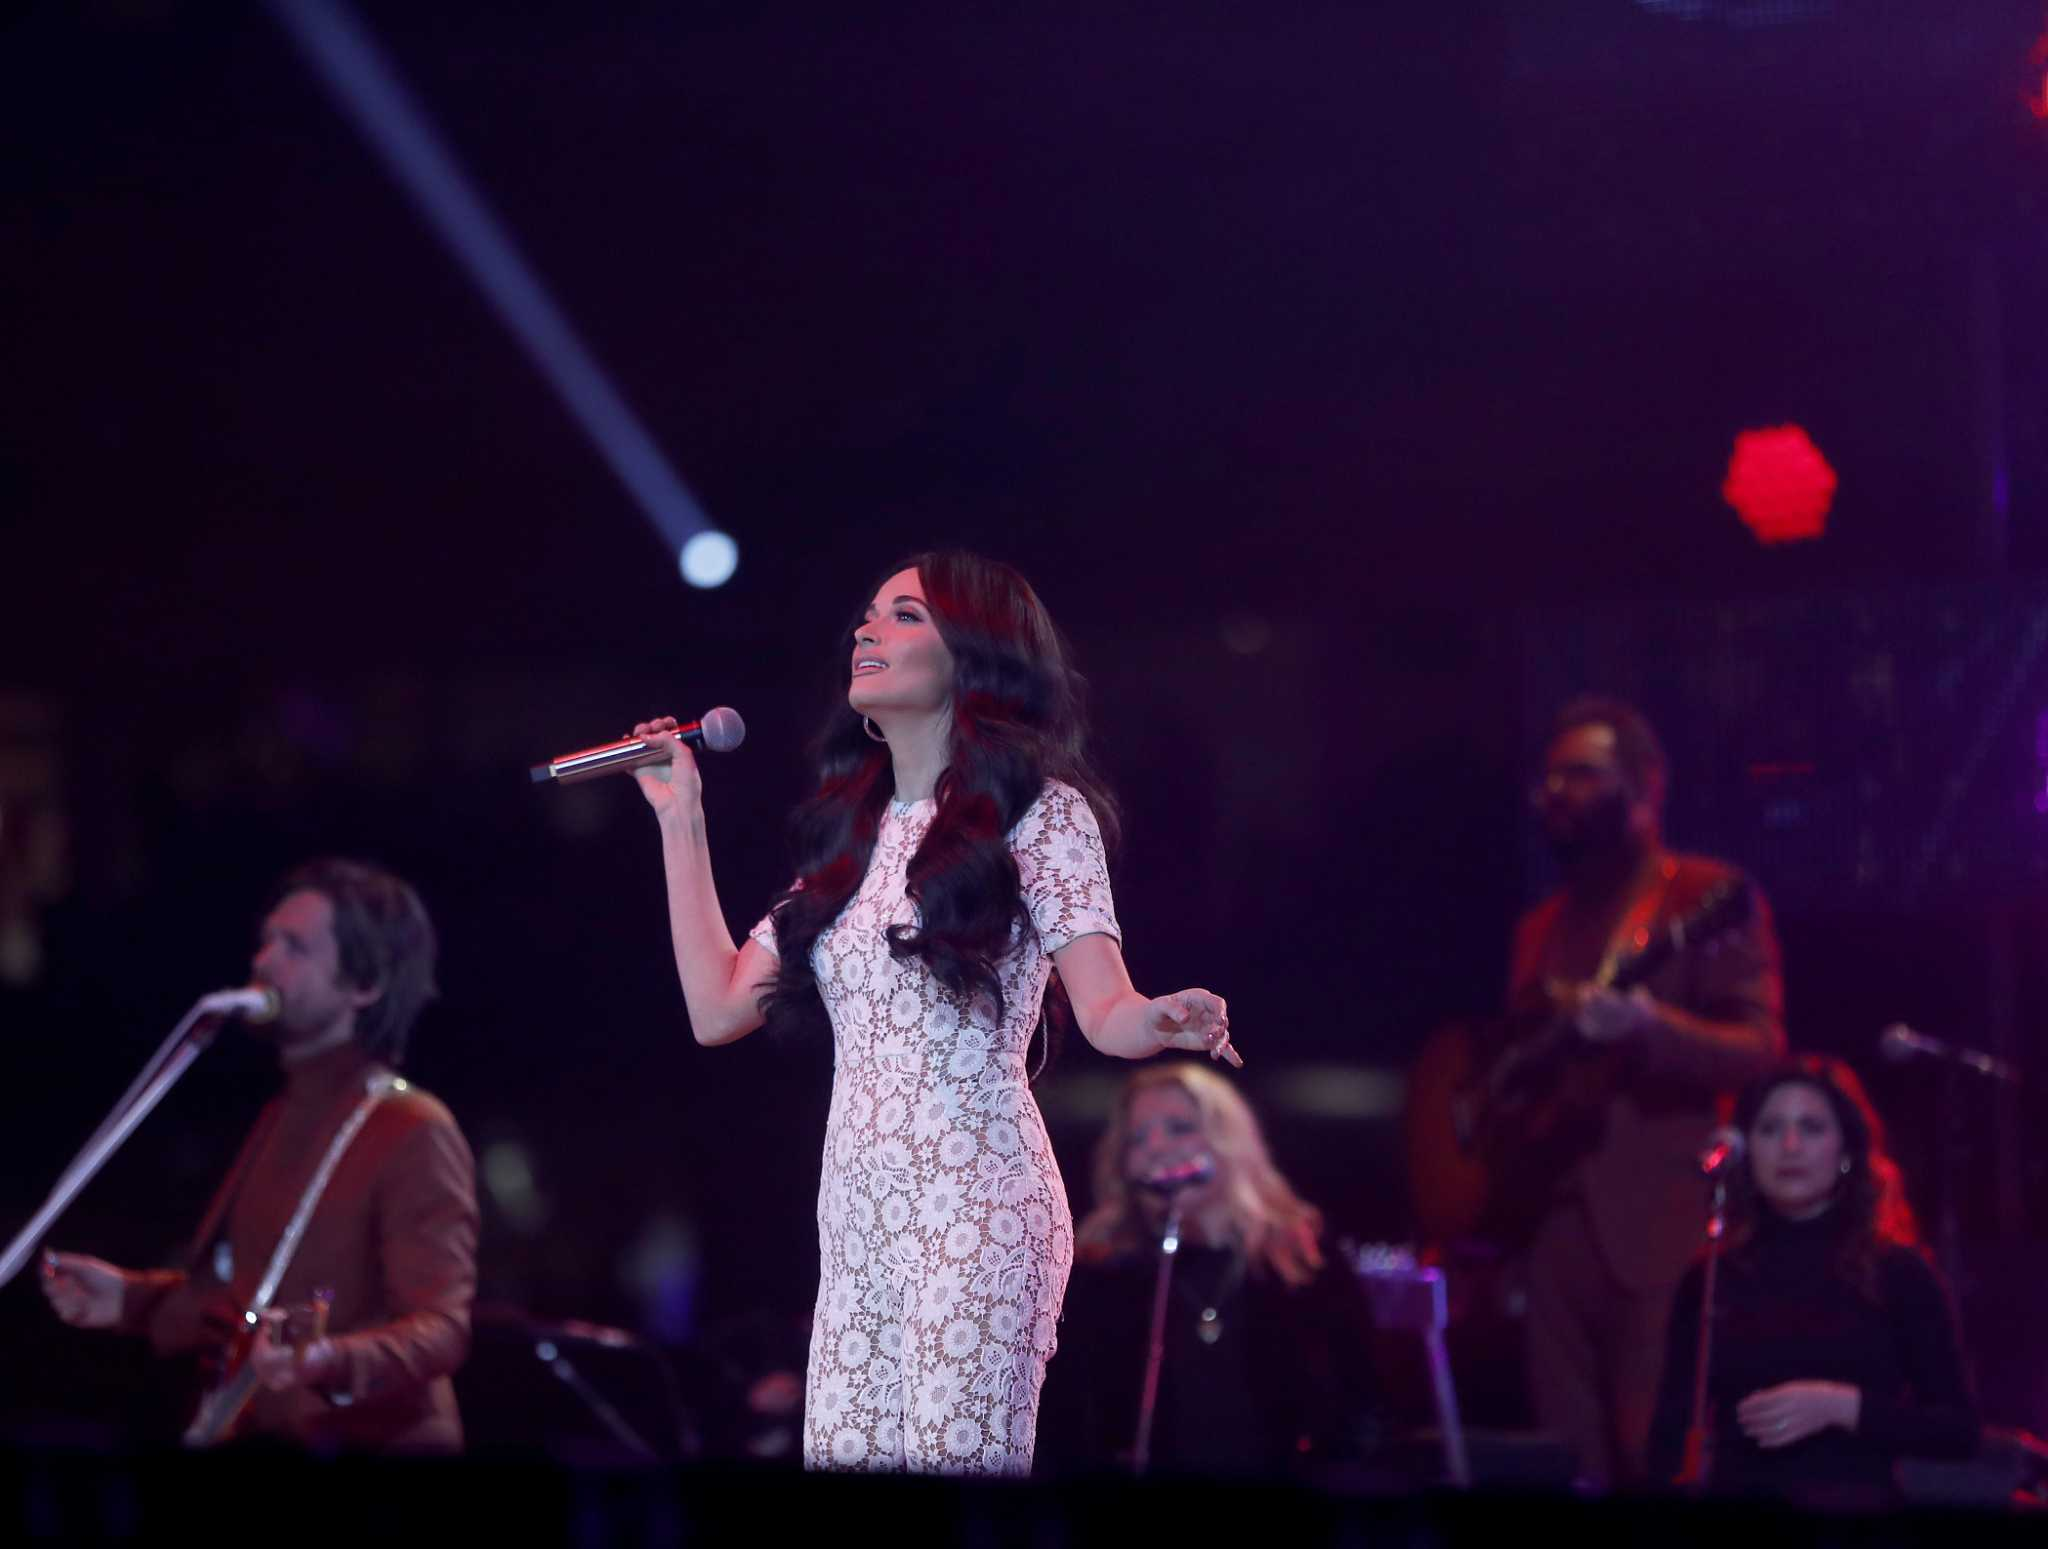 Kacey Musgraves Covers Selena And Makes Her Own Magic At